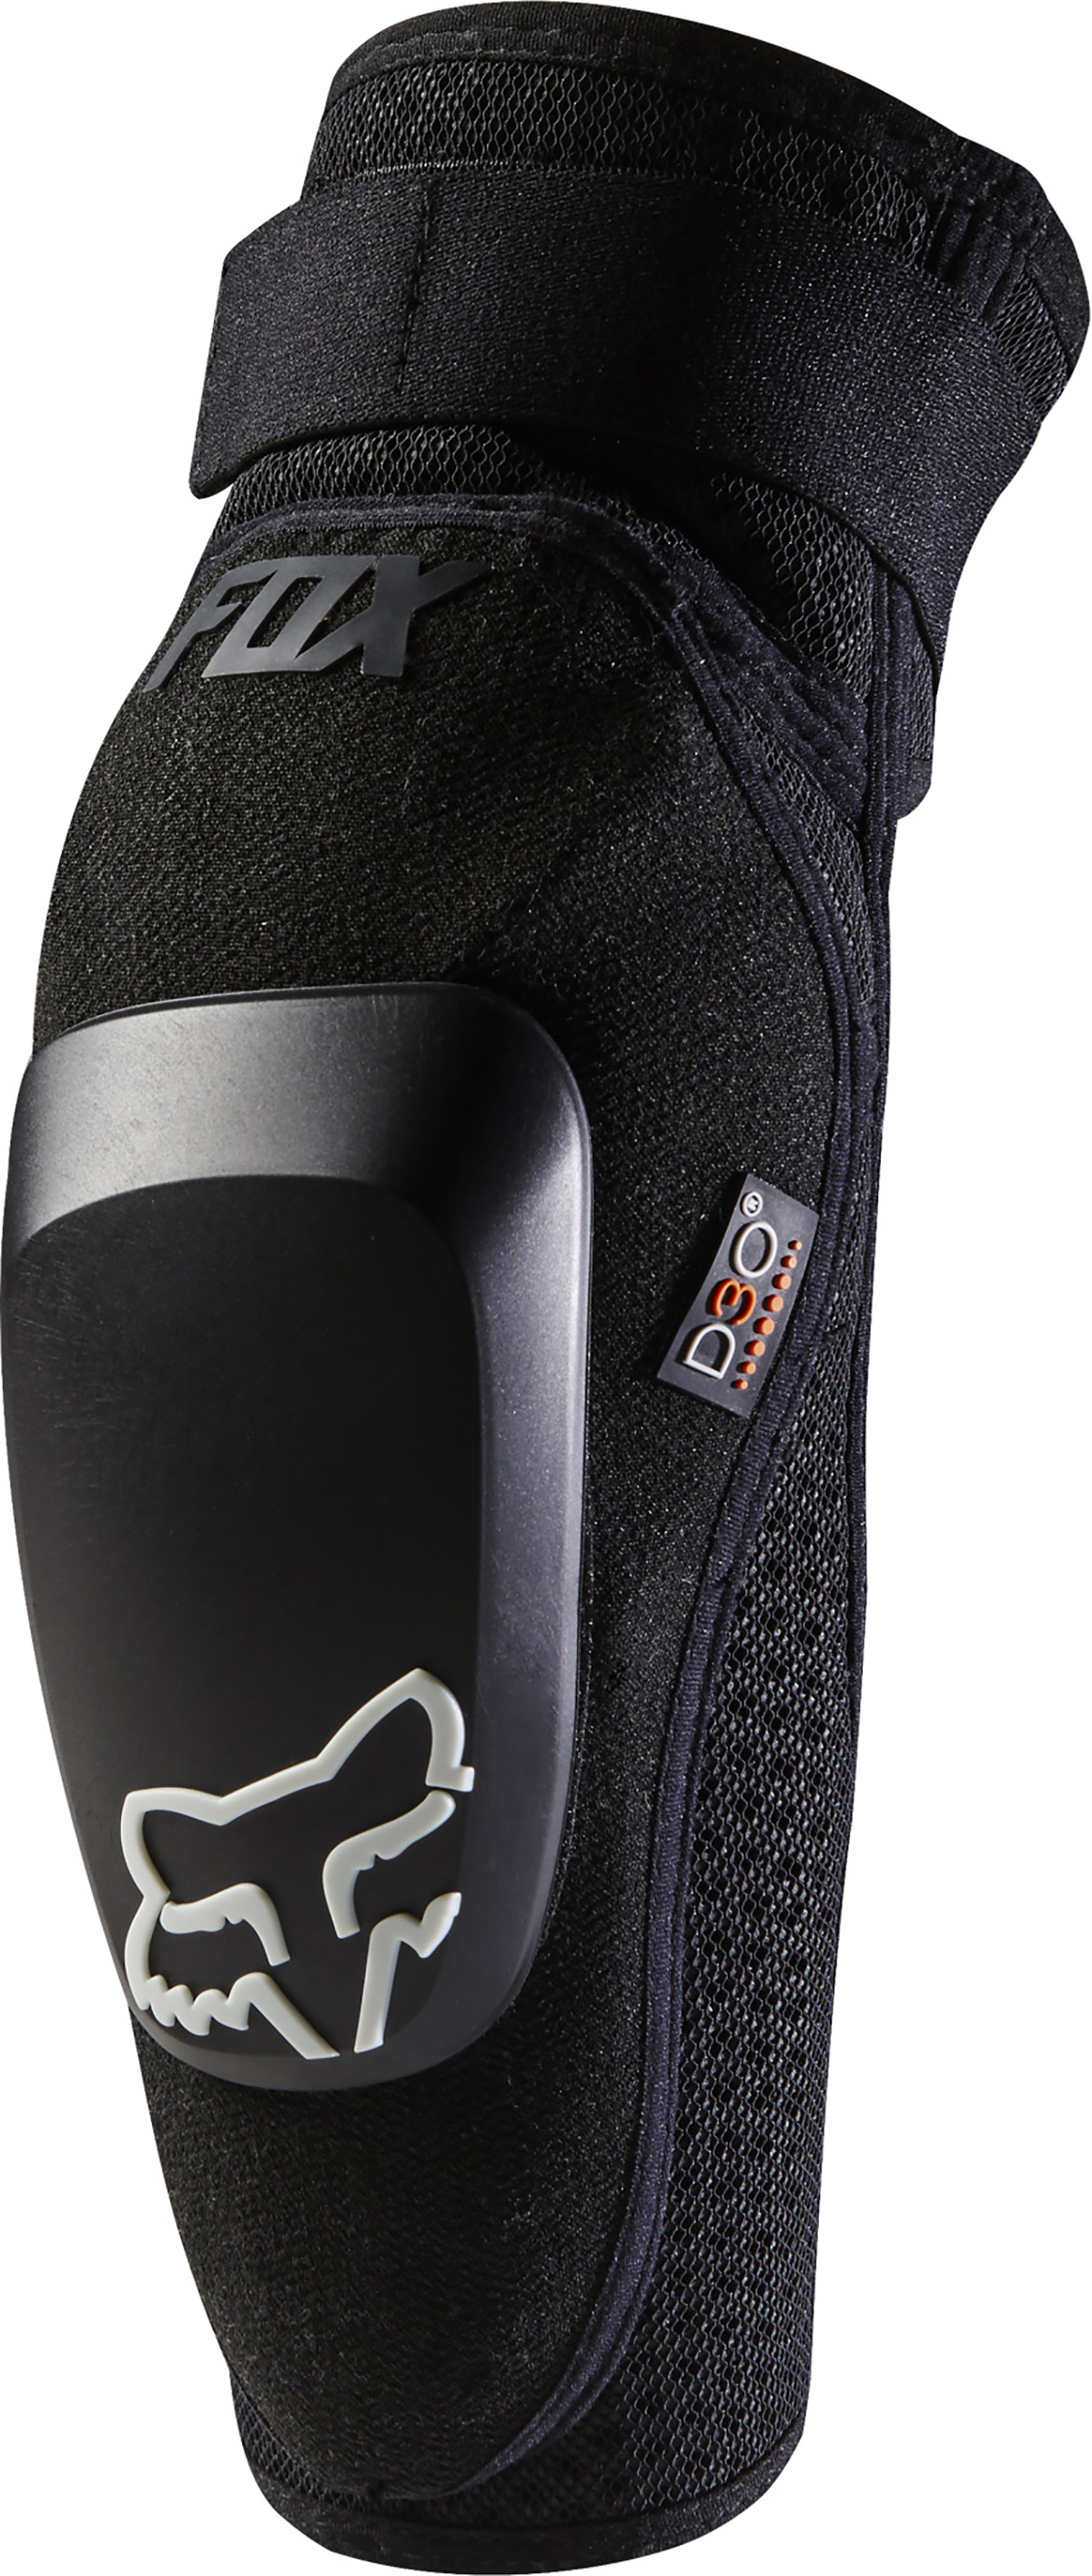 Fox - Launch Pro D3O | body amour